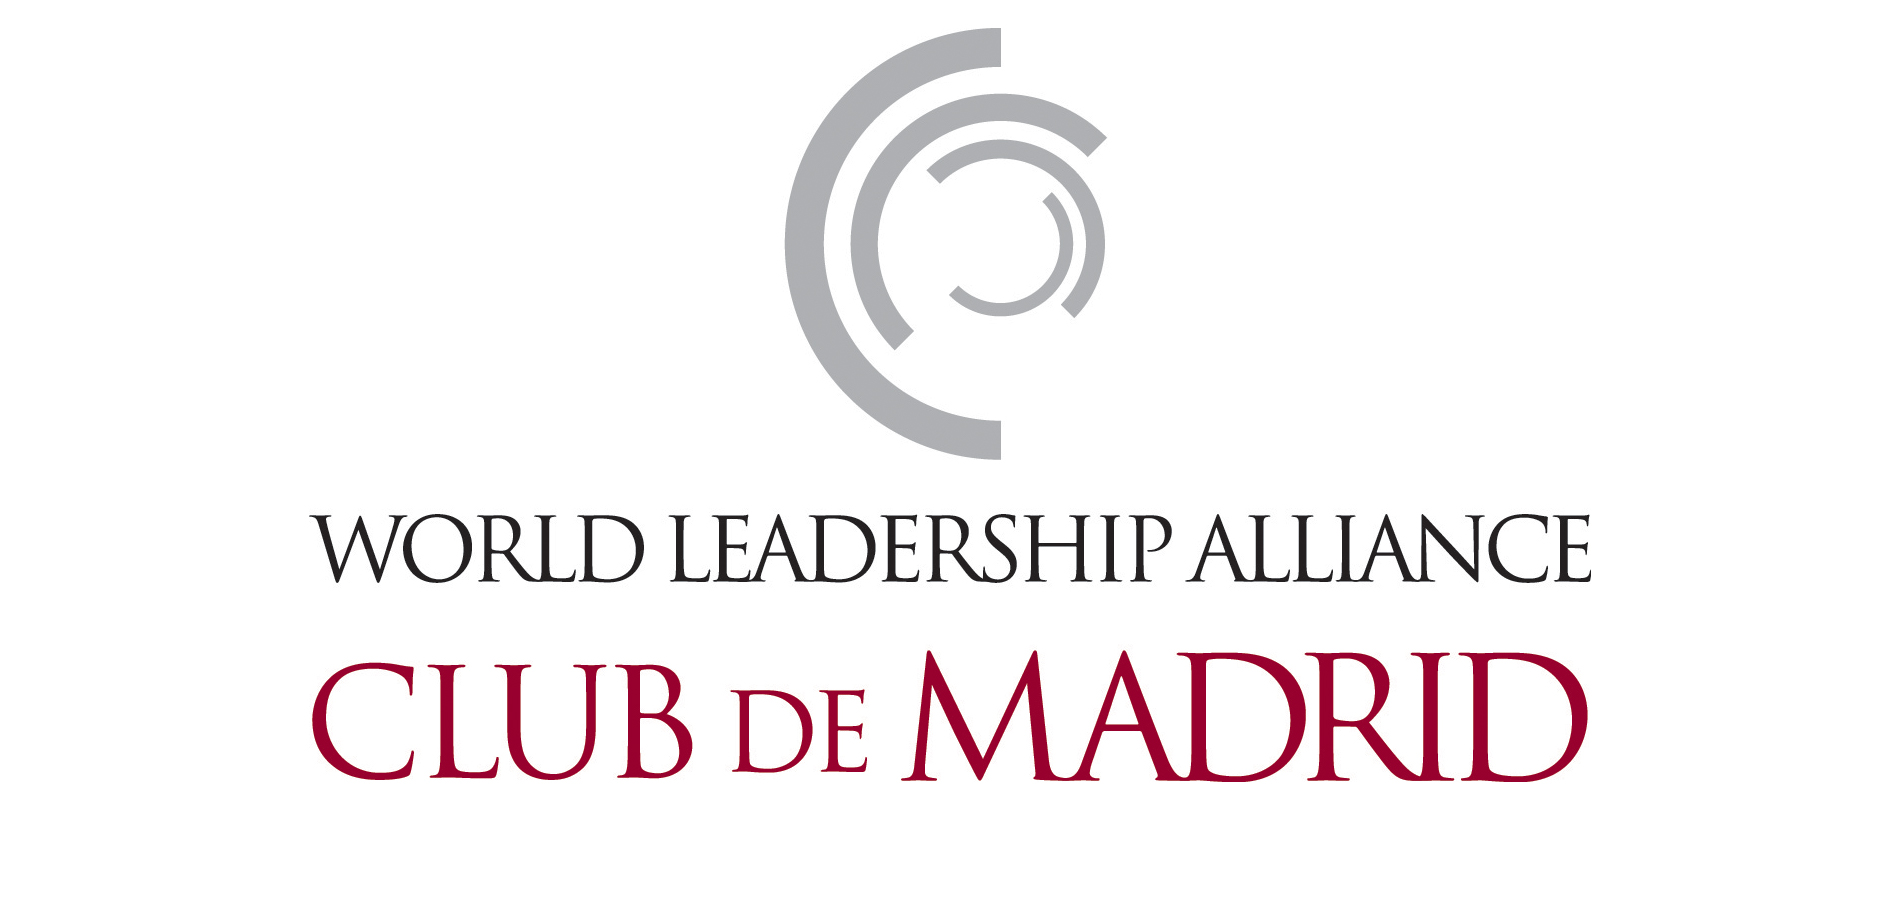 Club de Madrid joins letter addressed to G20 leaders calling for global coordination amidst health and economic crisis